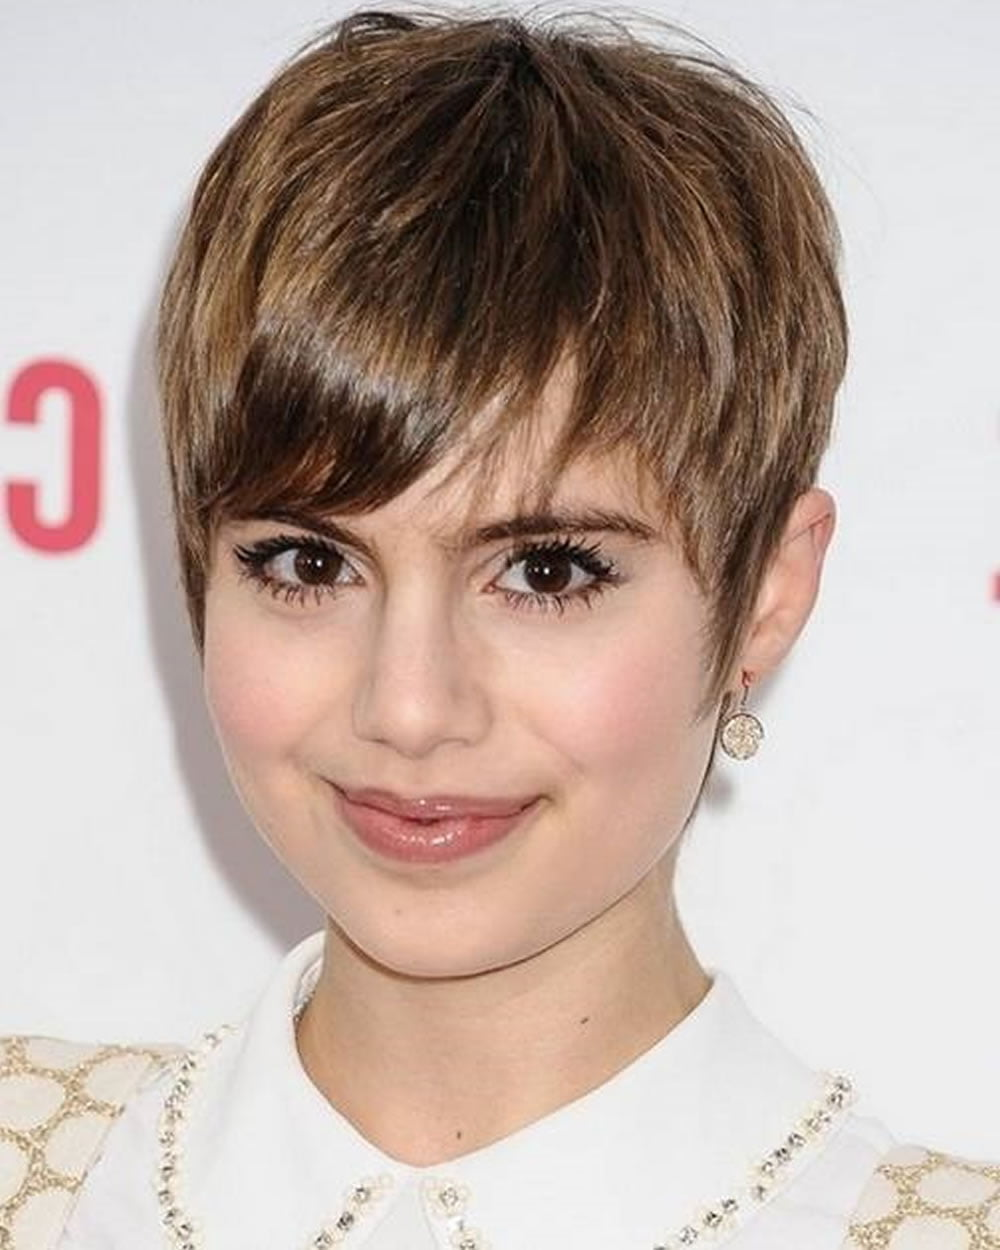 Pixie Hairstyles for Round Face and Thin Hair 2018 - HAIRSTYLES